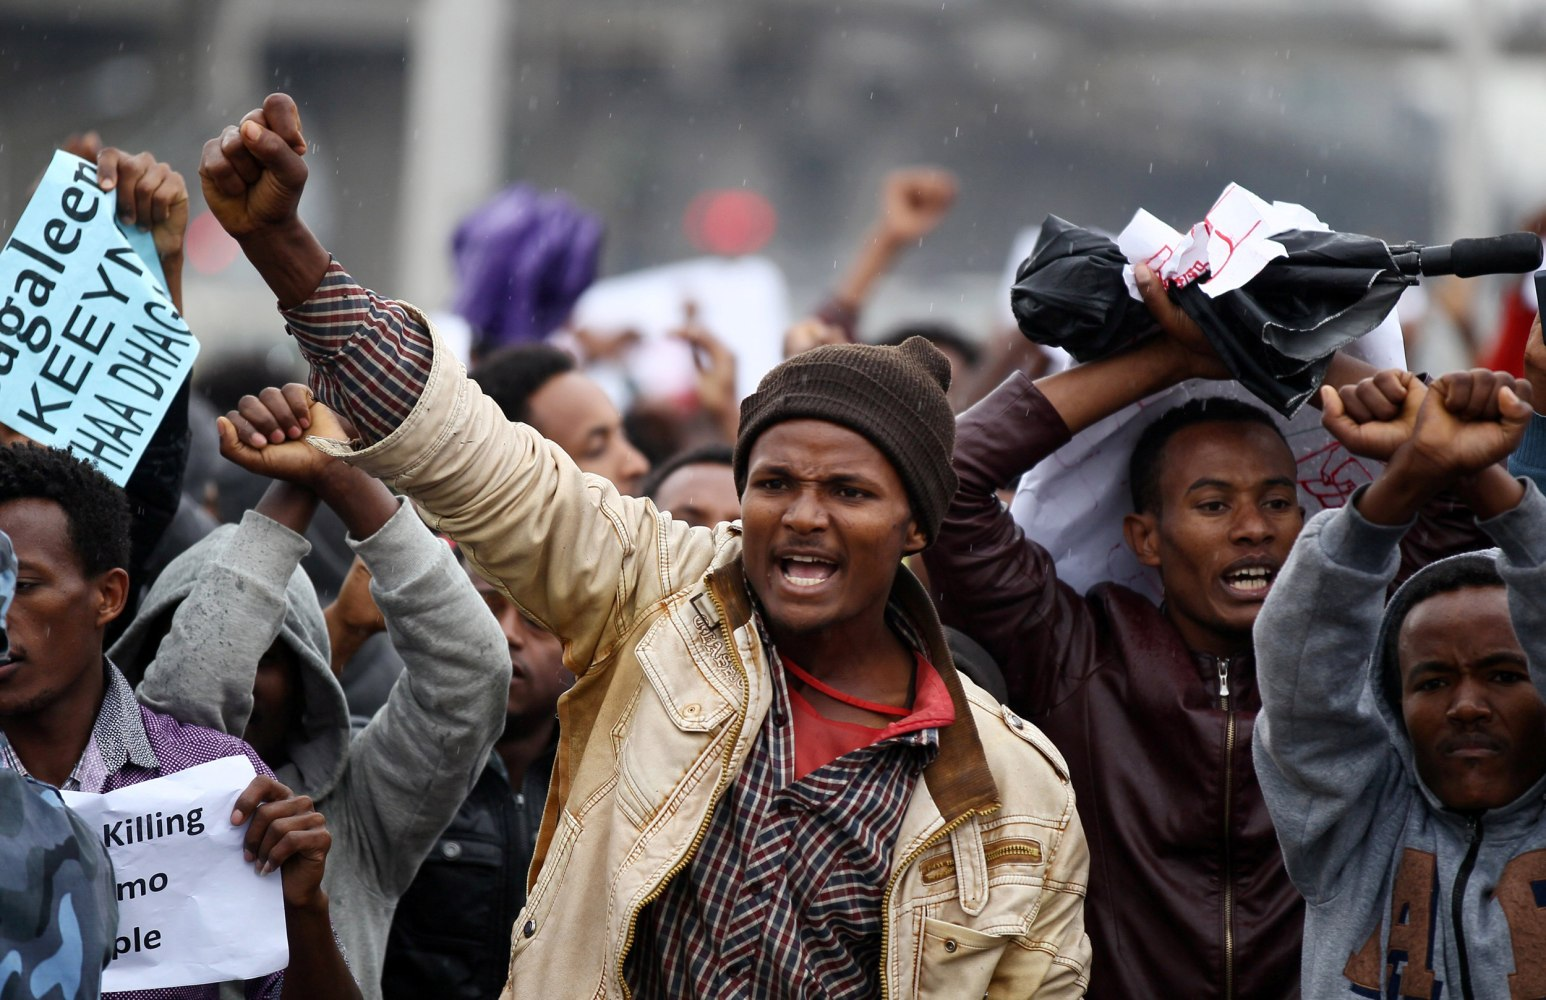 At least 30 protesters killed in Ethiopia's Oromiya region: opposition